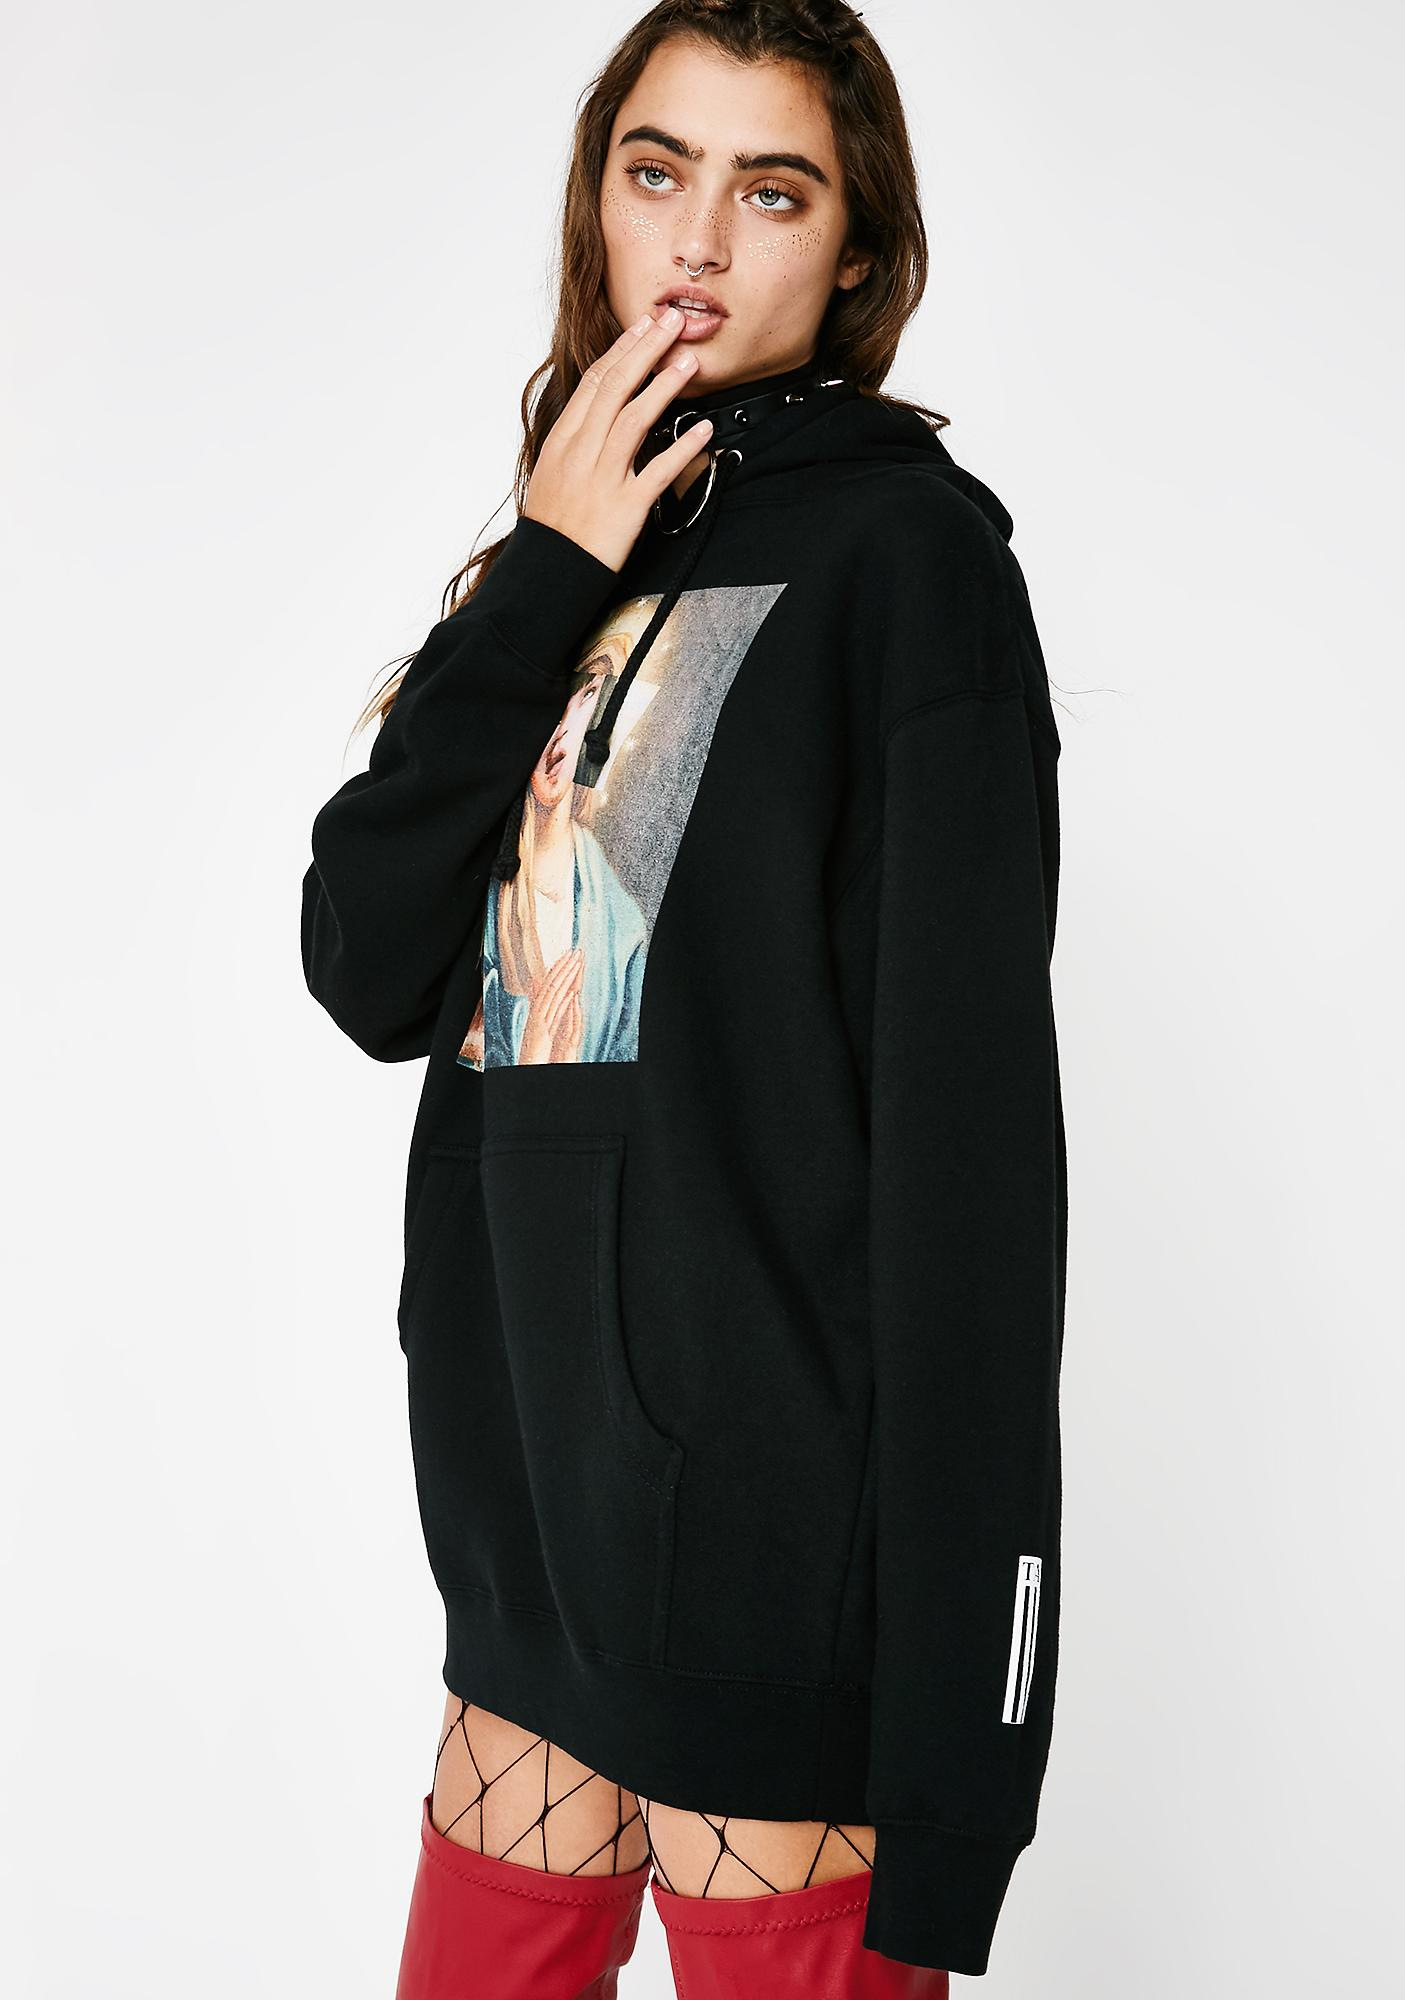 These Americans Ave Mia Hoodie